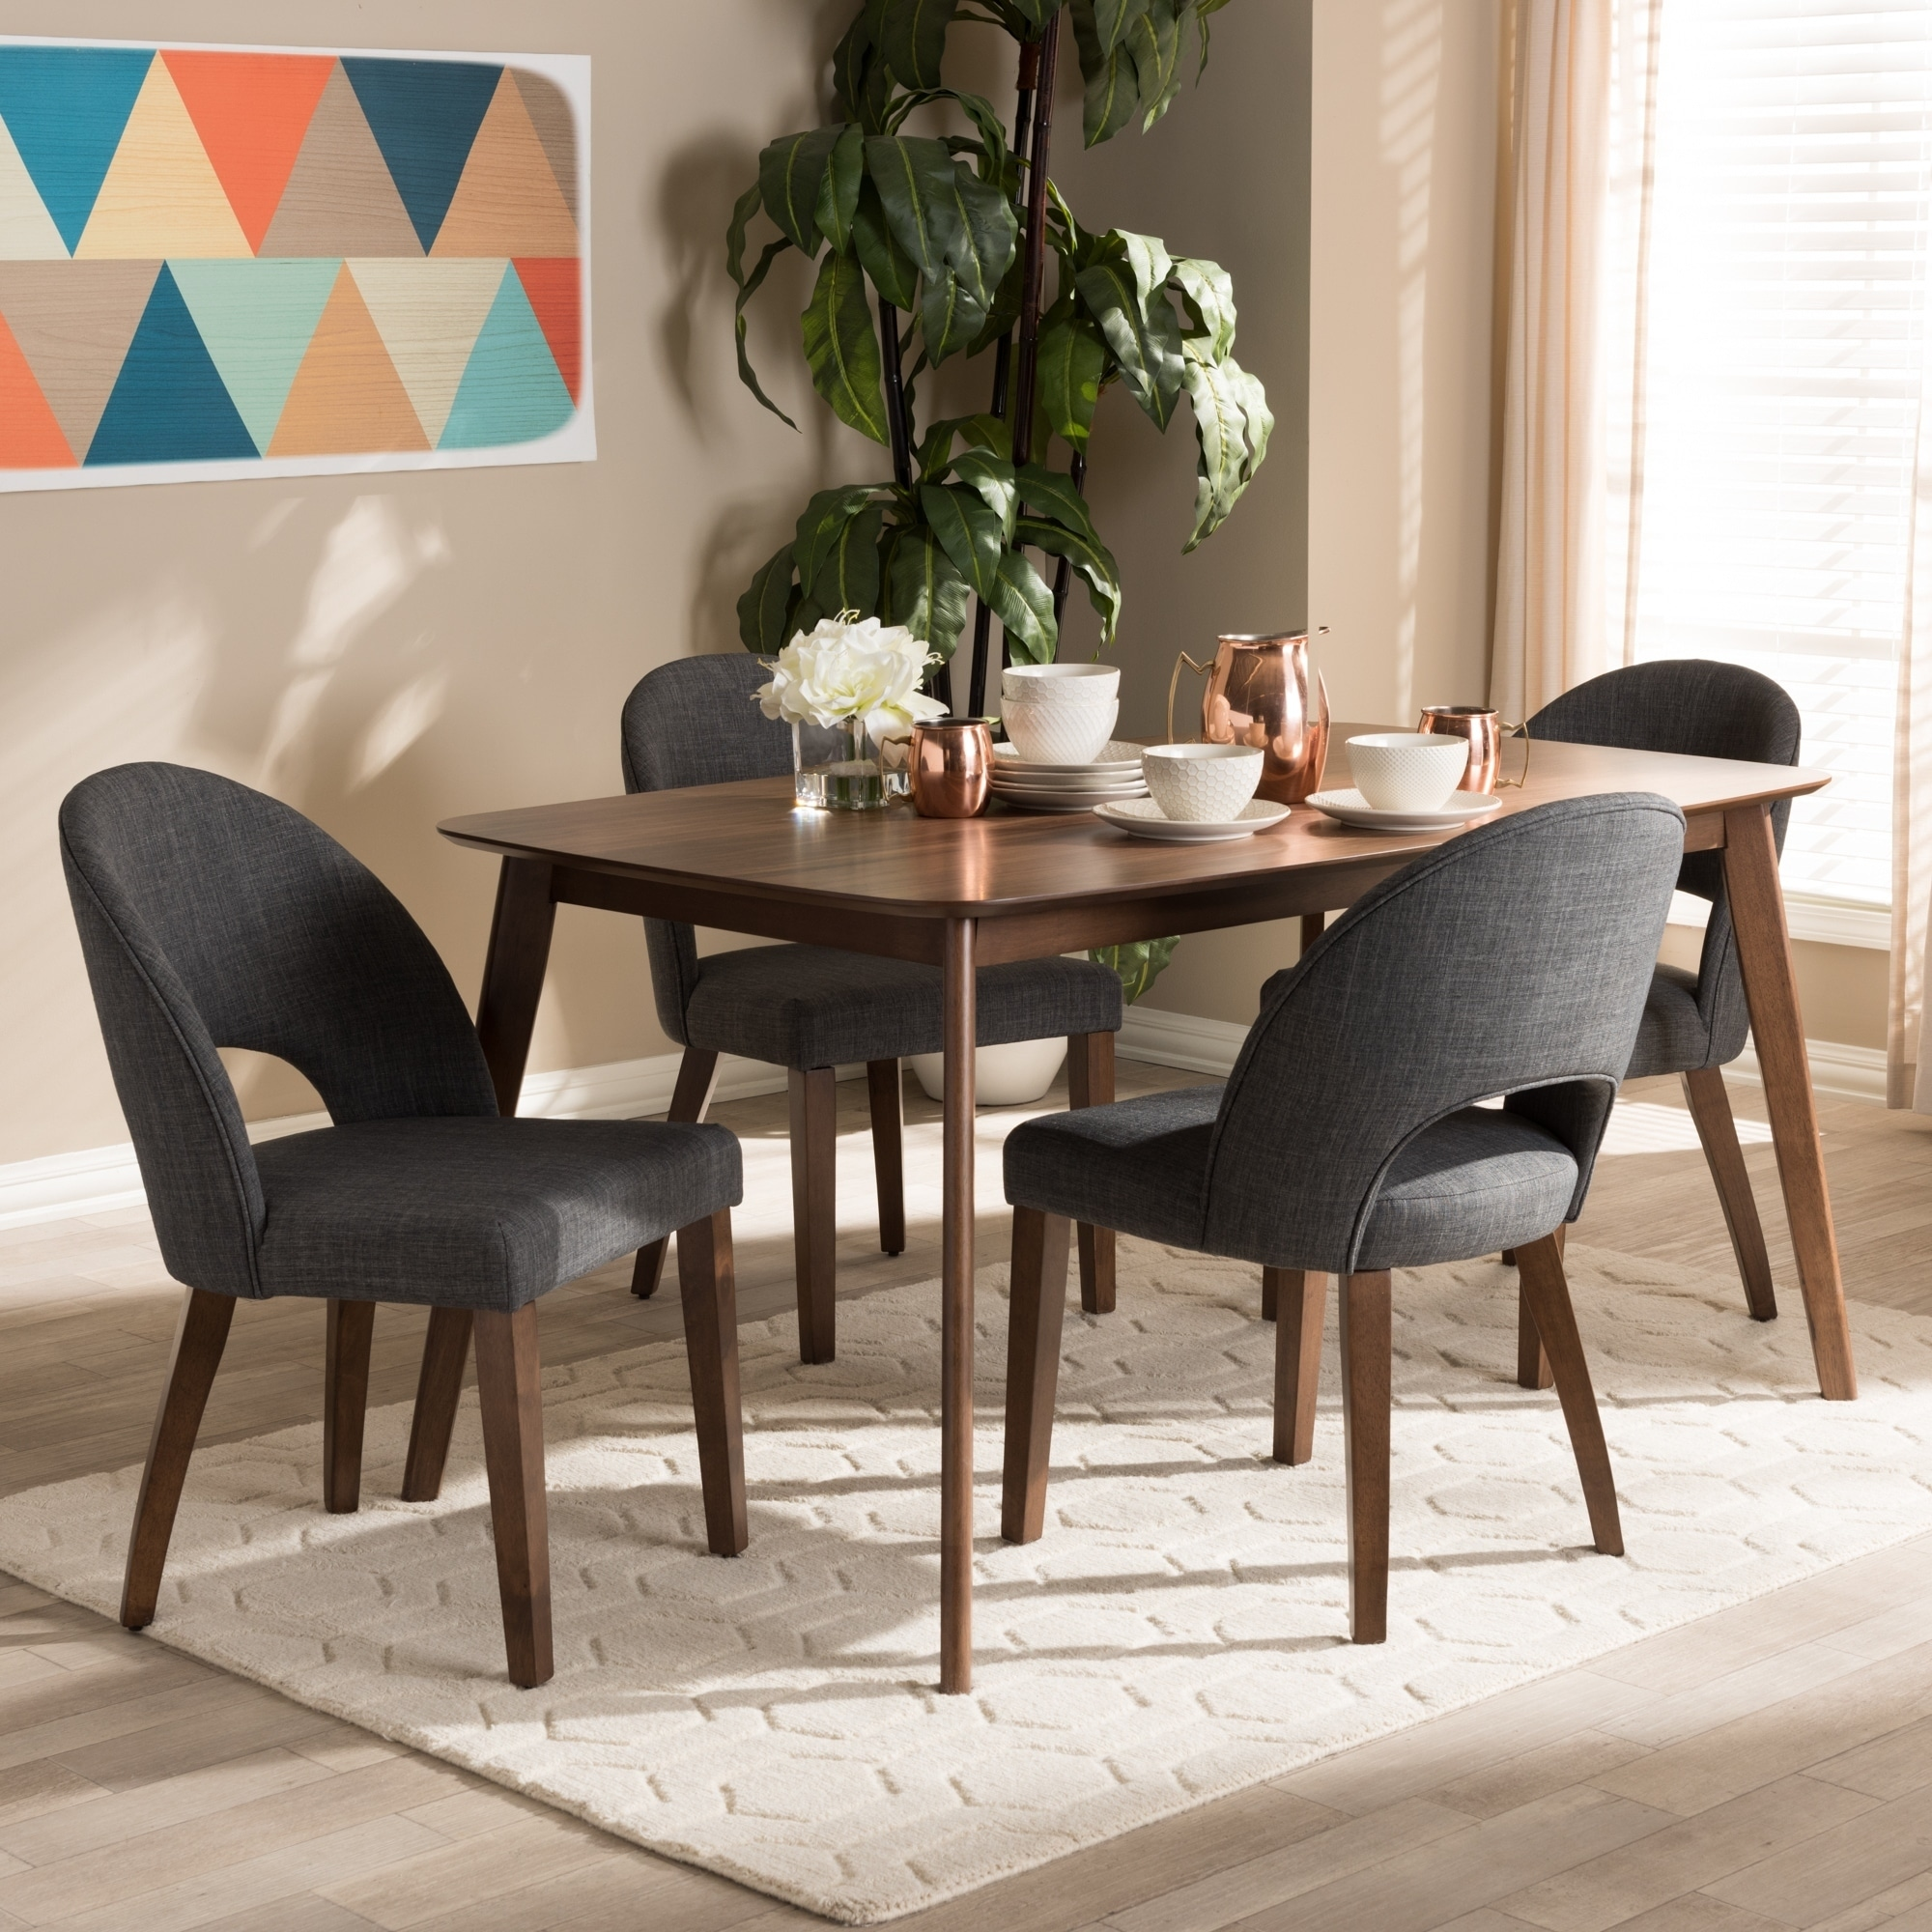 Mid-Century Fabric Upholstered 5-Piece Dining Set by Baxton Studio & Buy Upholstered Kitchen \u0026 Dining Room Sets Online at Overstock | Our ...